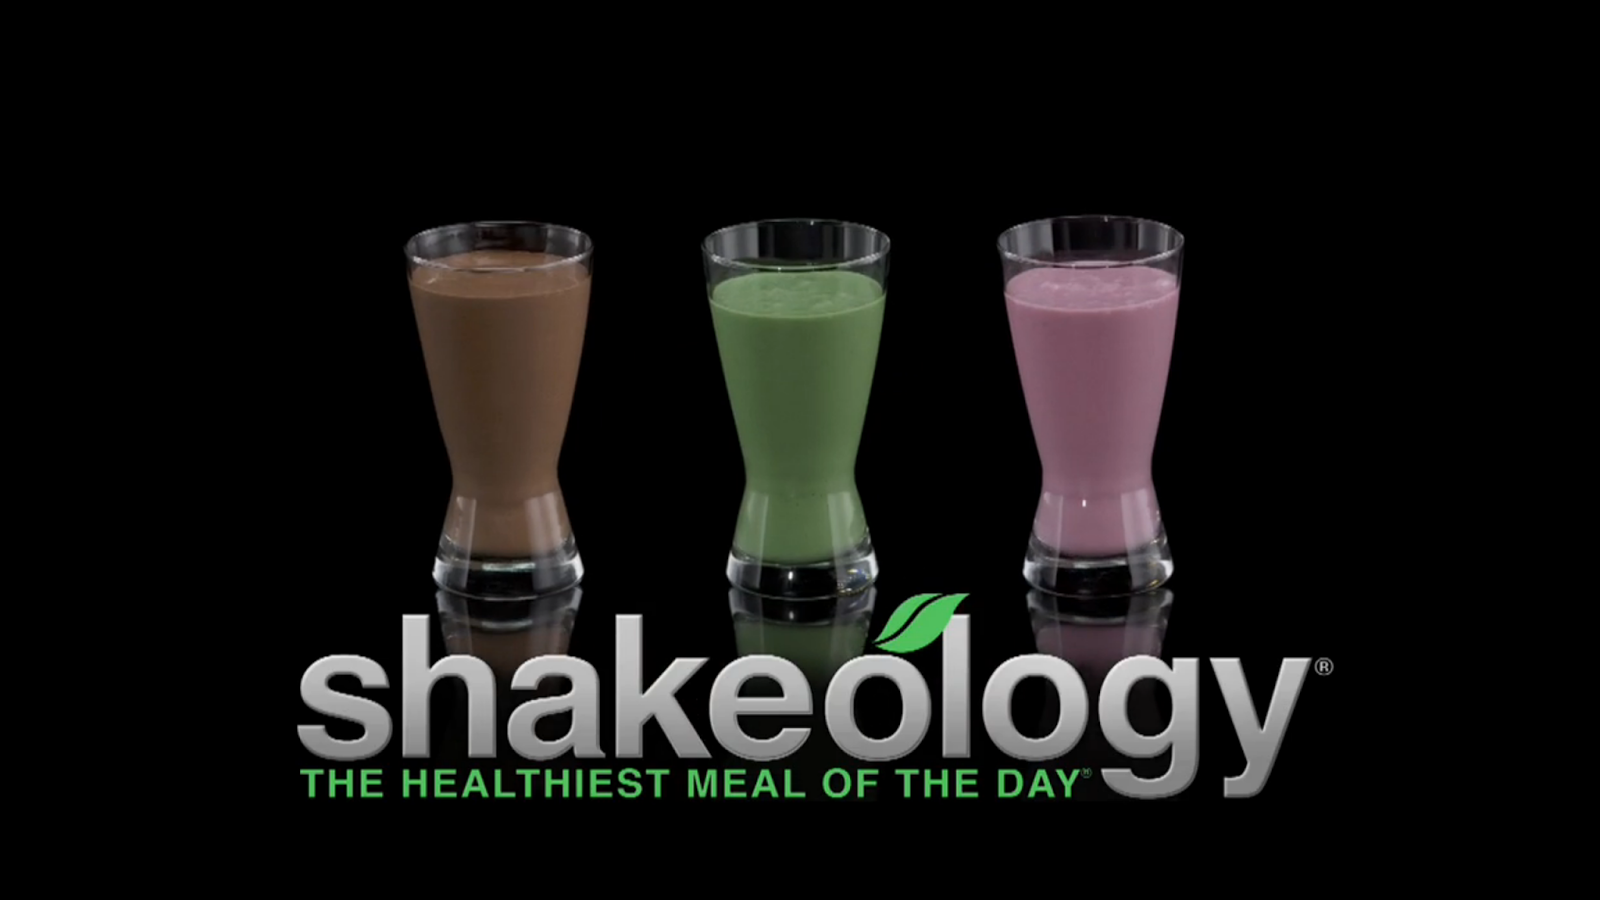 Shakeology, the Healthiest Meal of the Day, www.HealthyFitFocused.com